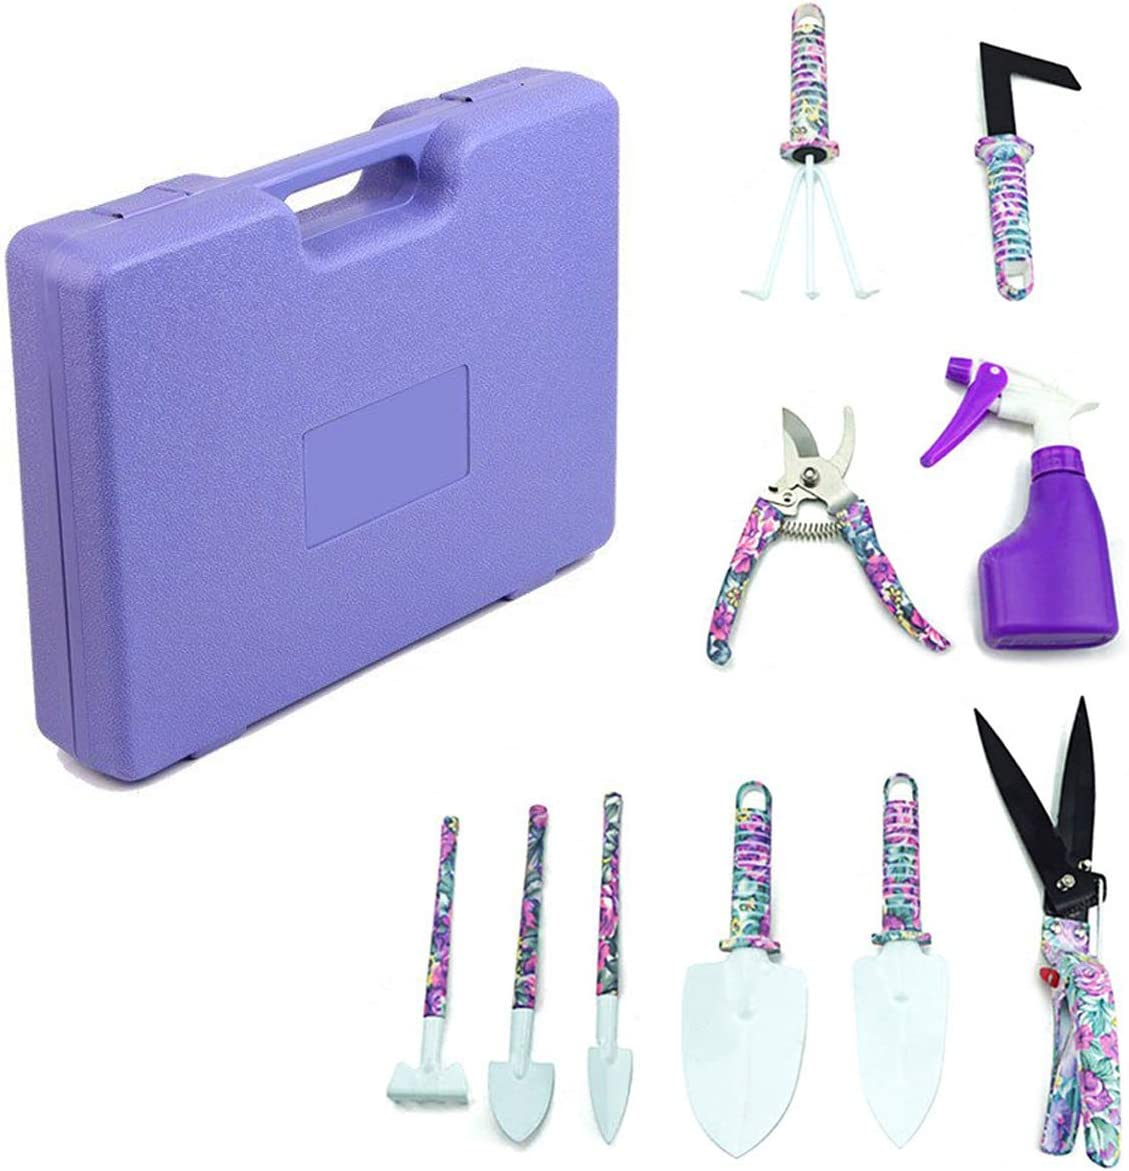 Jranter 10 Pieces Stainless Steel Garden Hand Tool Set,Purple Garden Hand Tools with Carrying Case